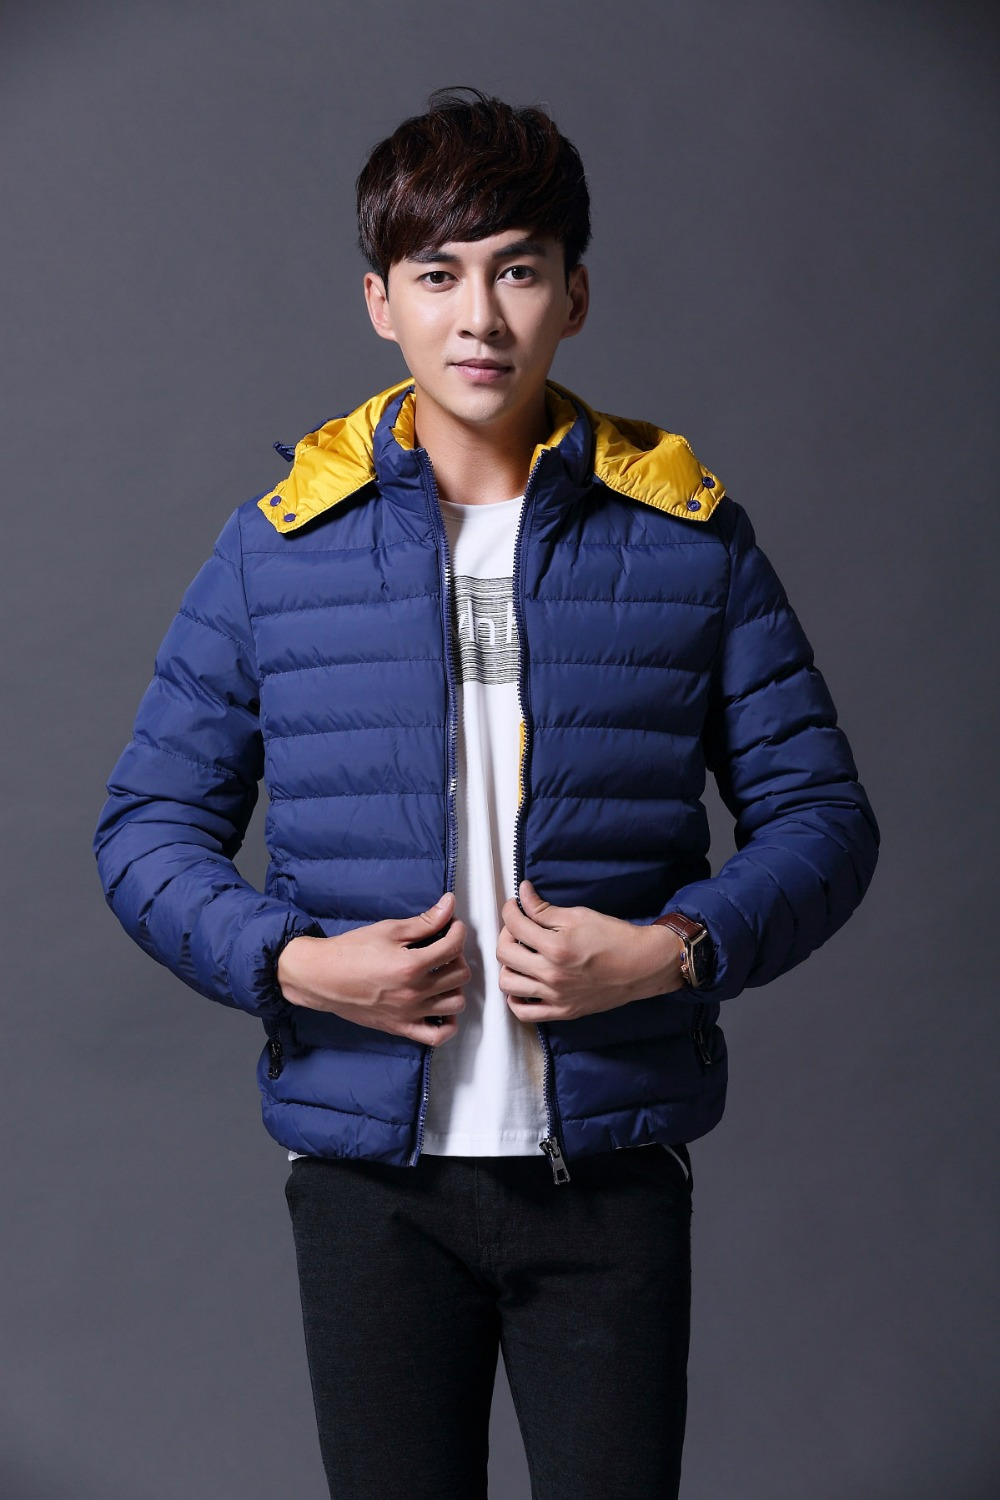 2015 New Fashion Plus Size Men's Jacket Winter Windbreaker Coat Slim Thick chaqueta de invierno de los hombres Casual Clothing(China (Mainland))